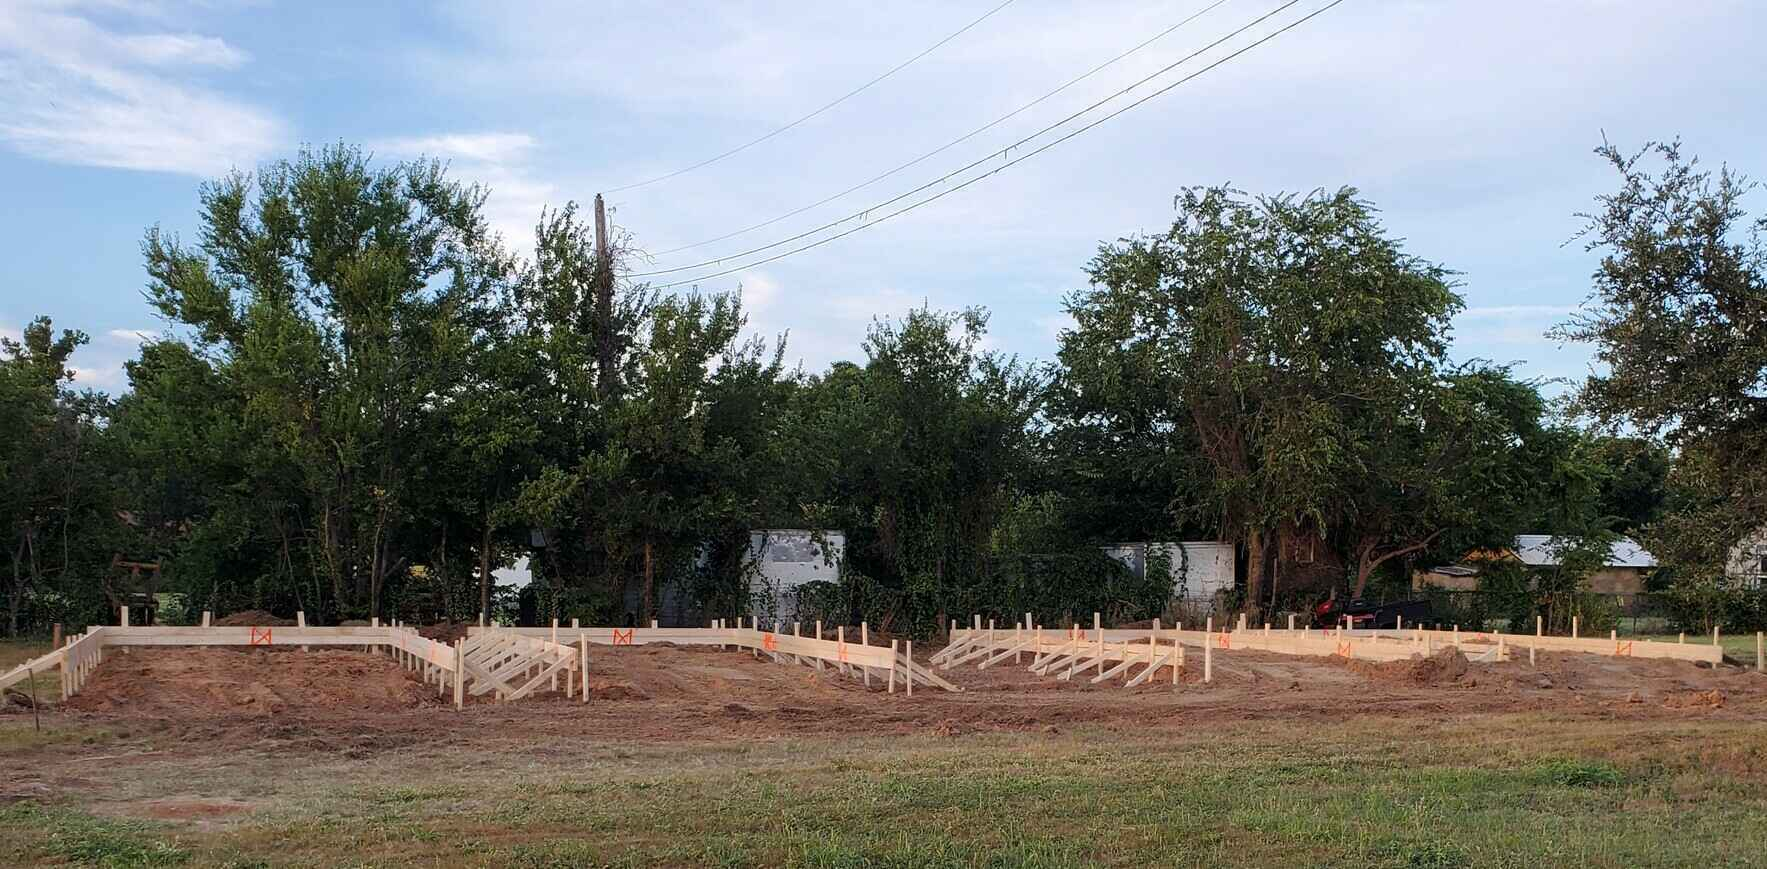 We are growing! Phase 2 will be an additional 16 tiny houses... to care for the sick. image